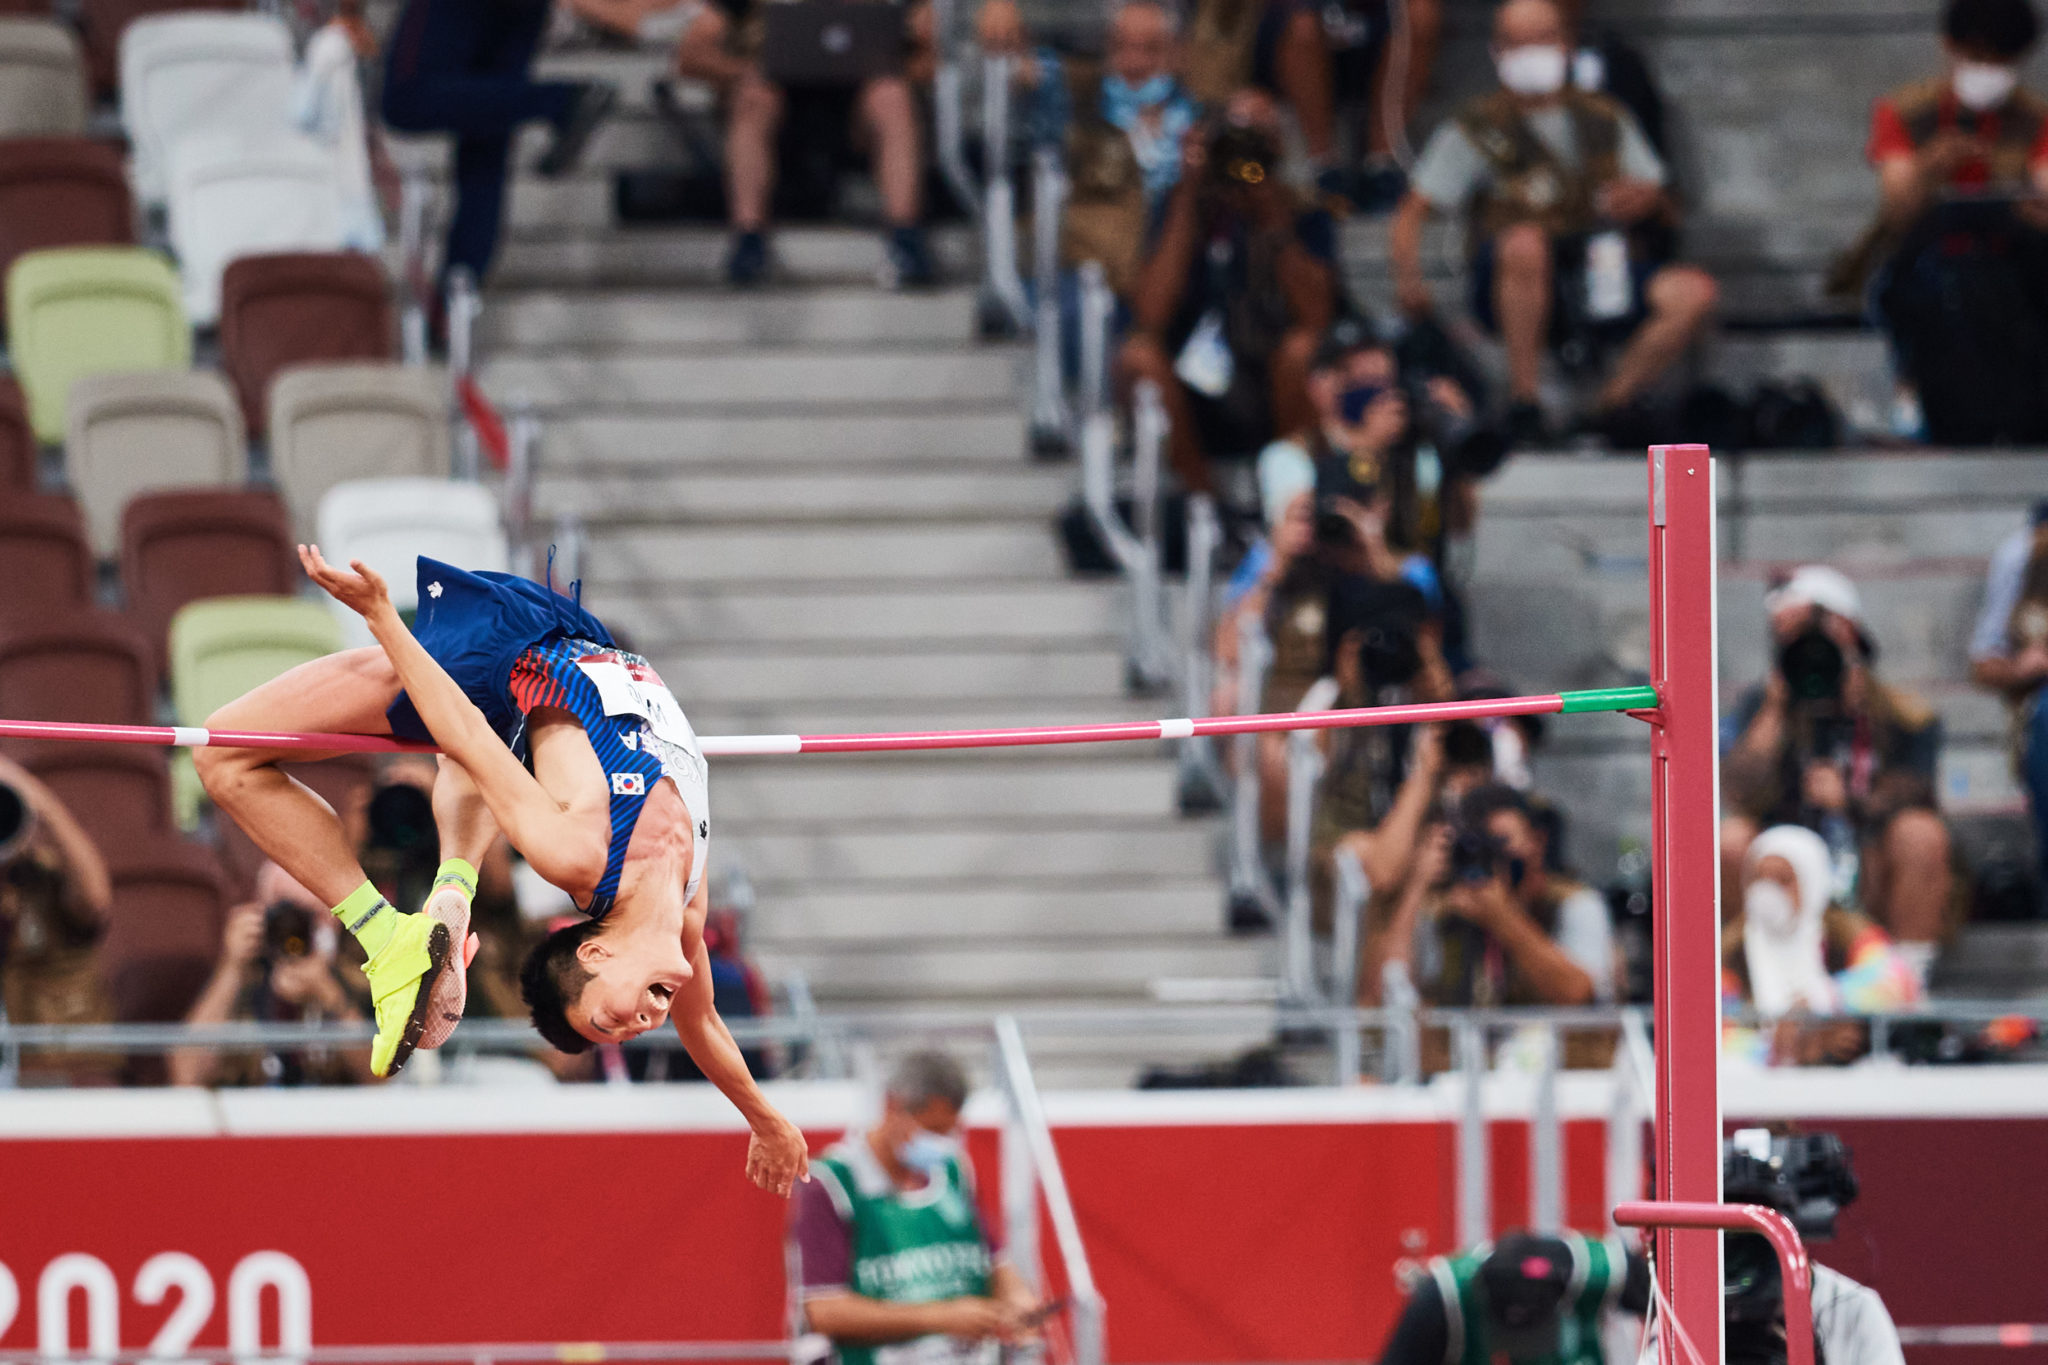 Photograph of Woo Sanghyeok of the Republic of Korea in the men's high jump final during the 2020 Tokyo Olympics at the Olympic Stadium in Tokyo, Japan.